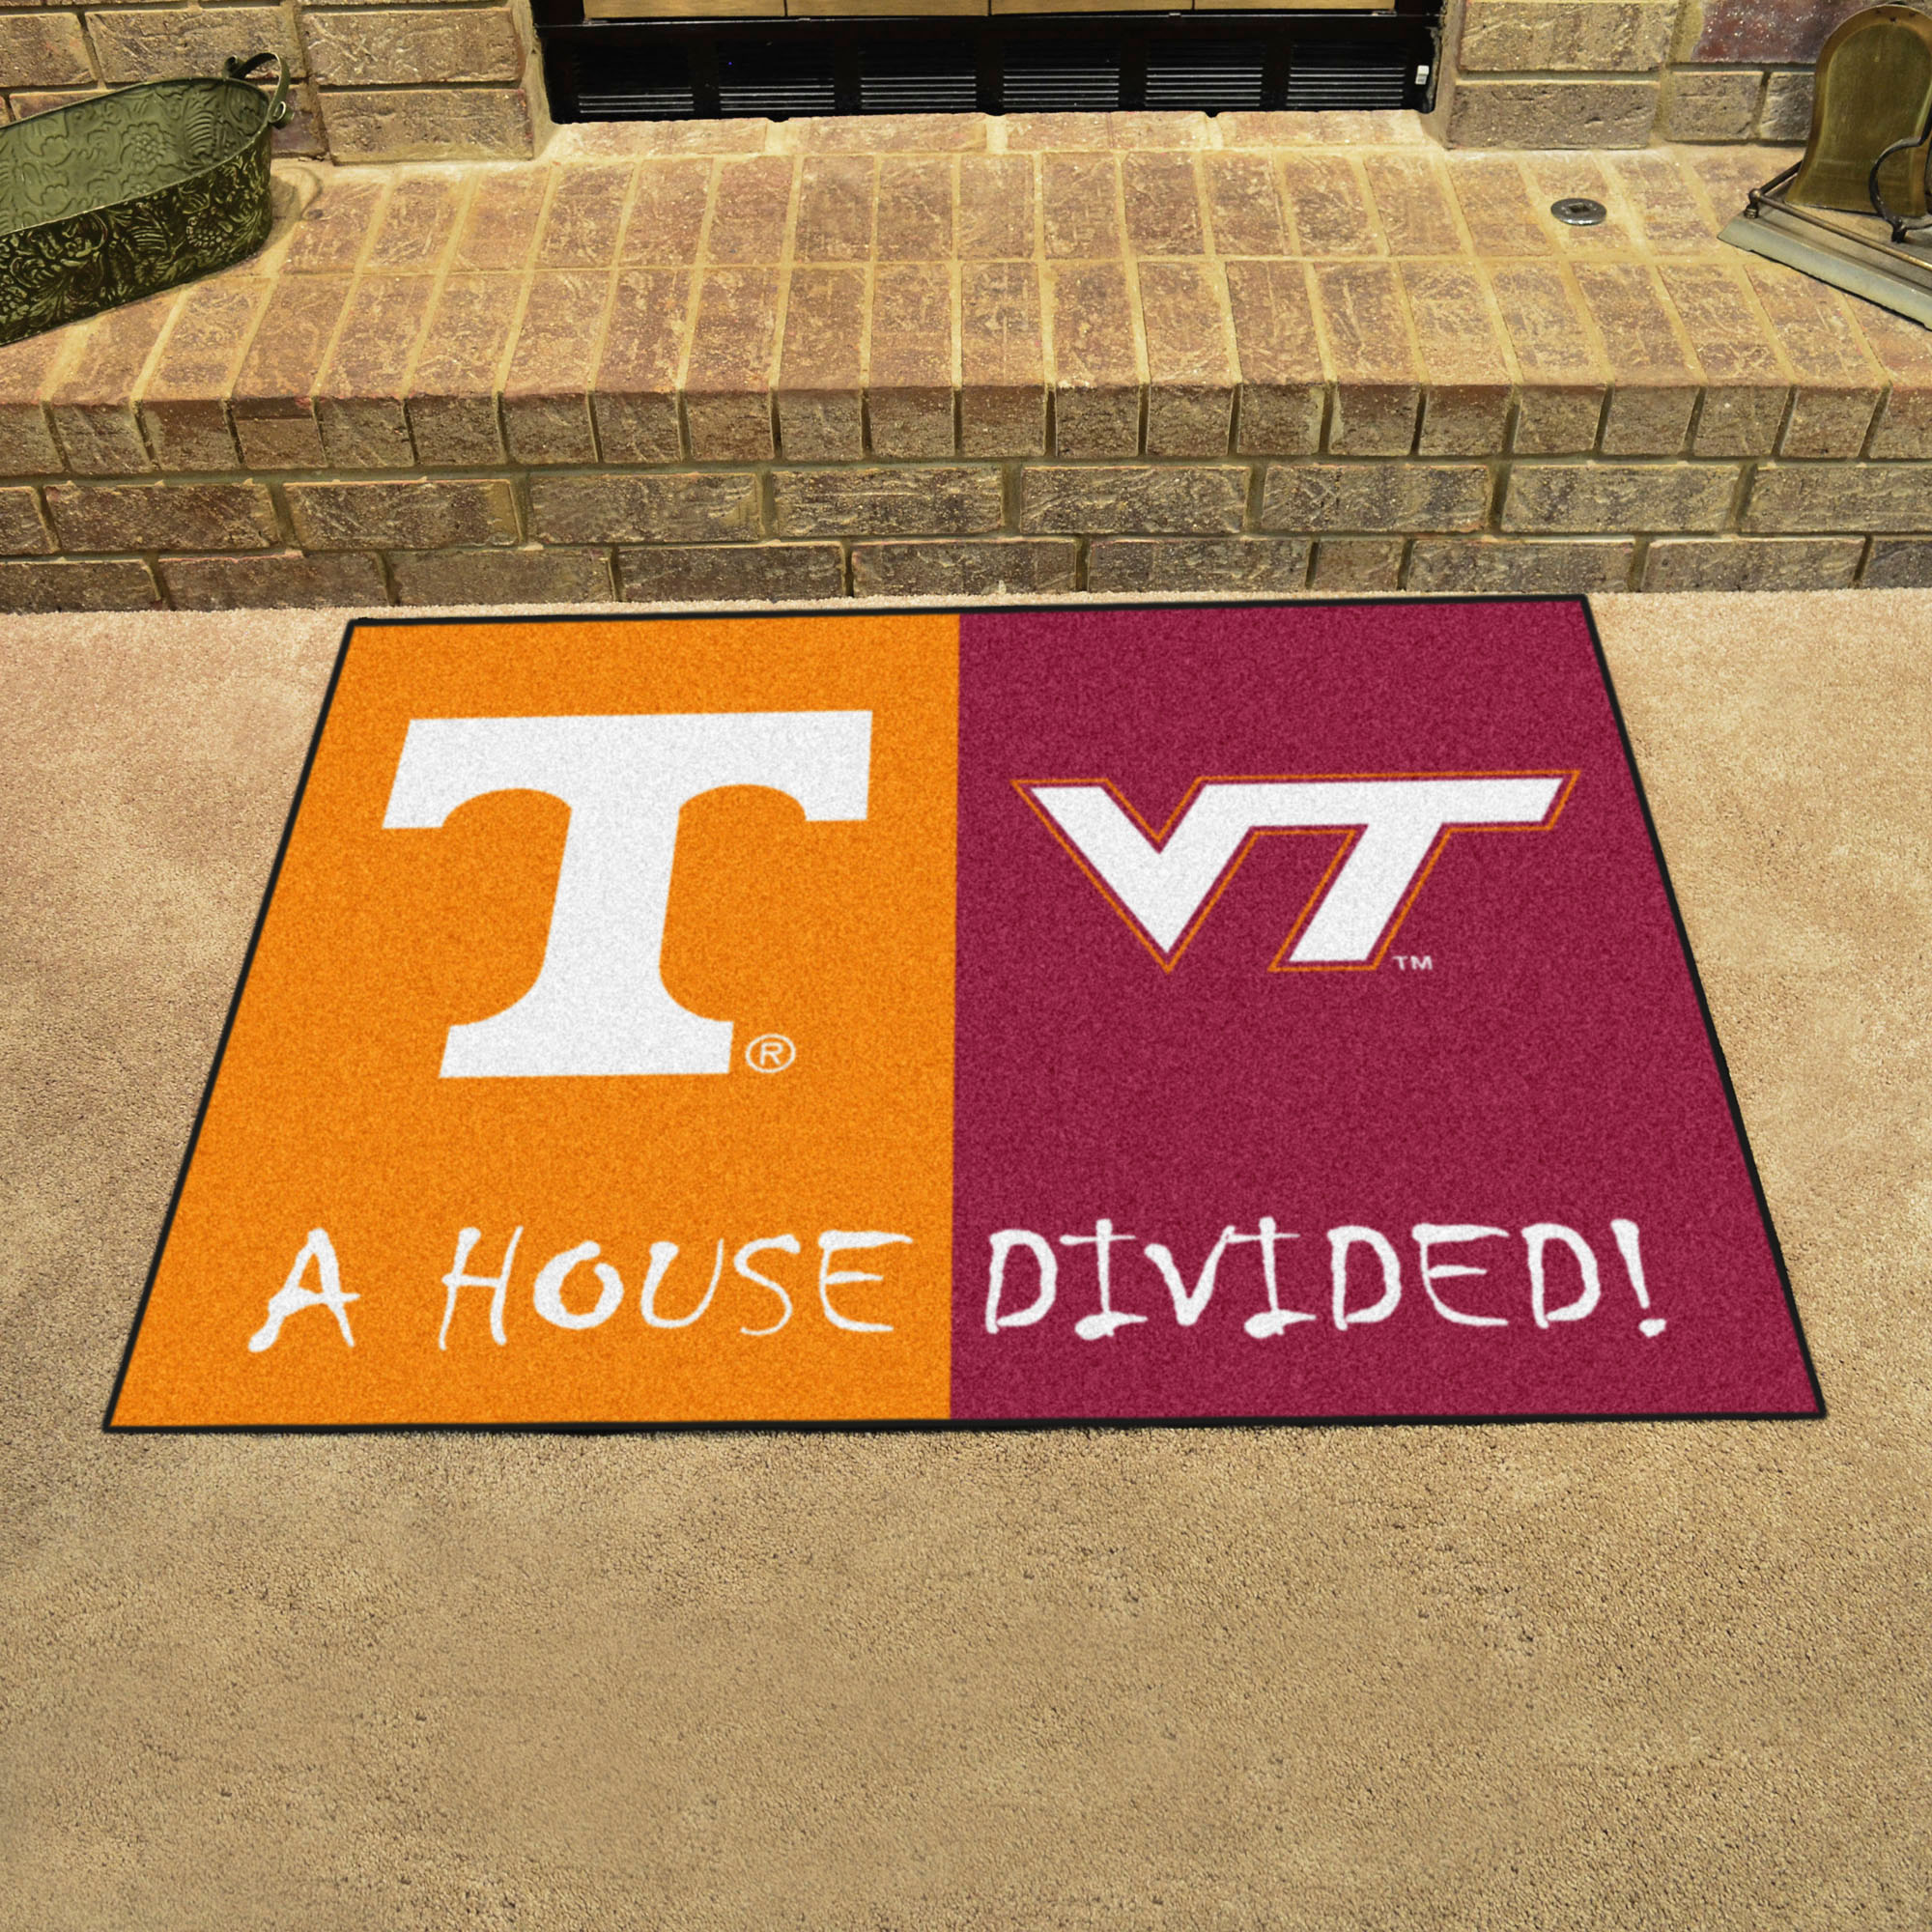 NCAA House Divided Rivalry Rug Tennessee Volunteers - Virginia Tech Hokies